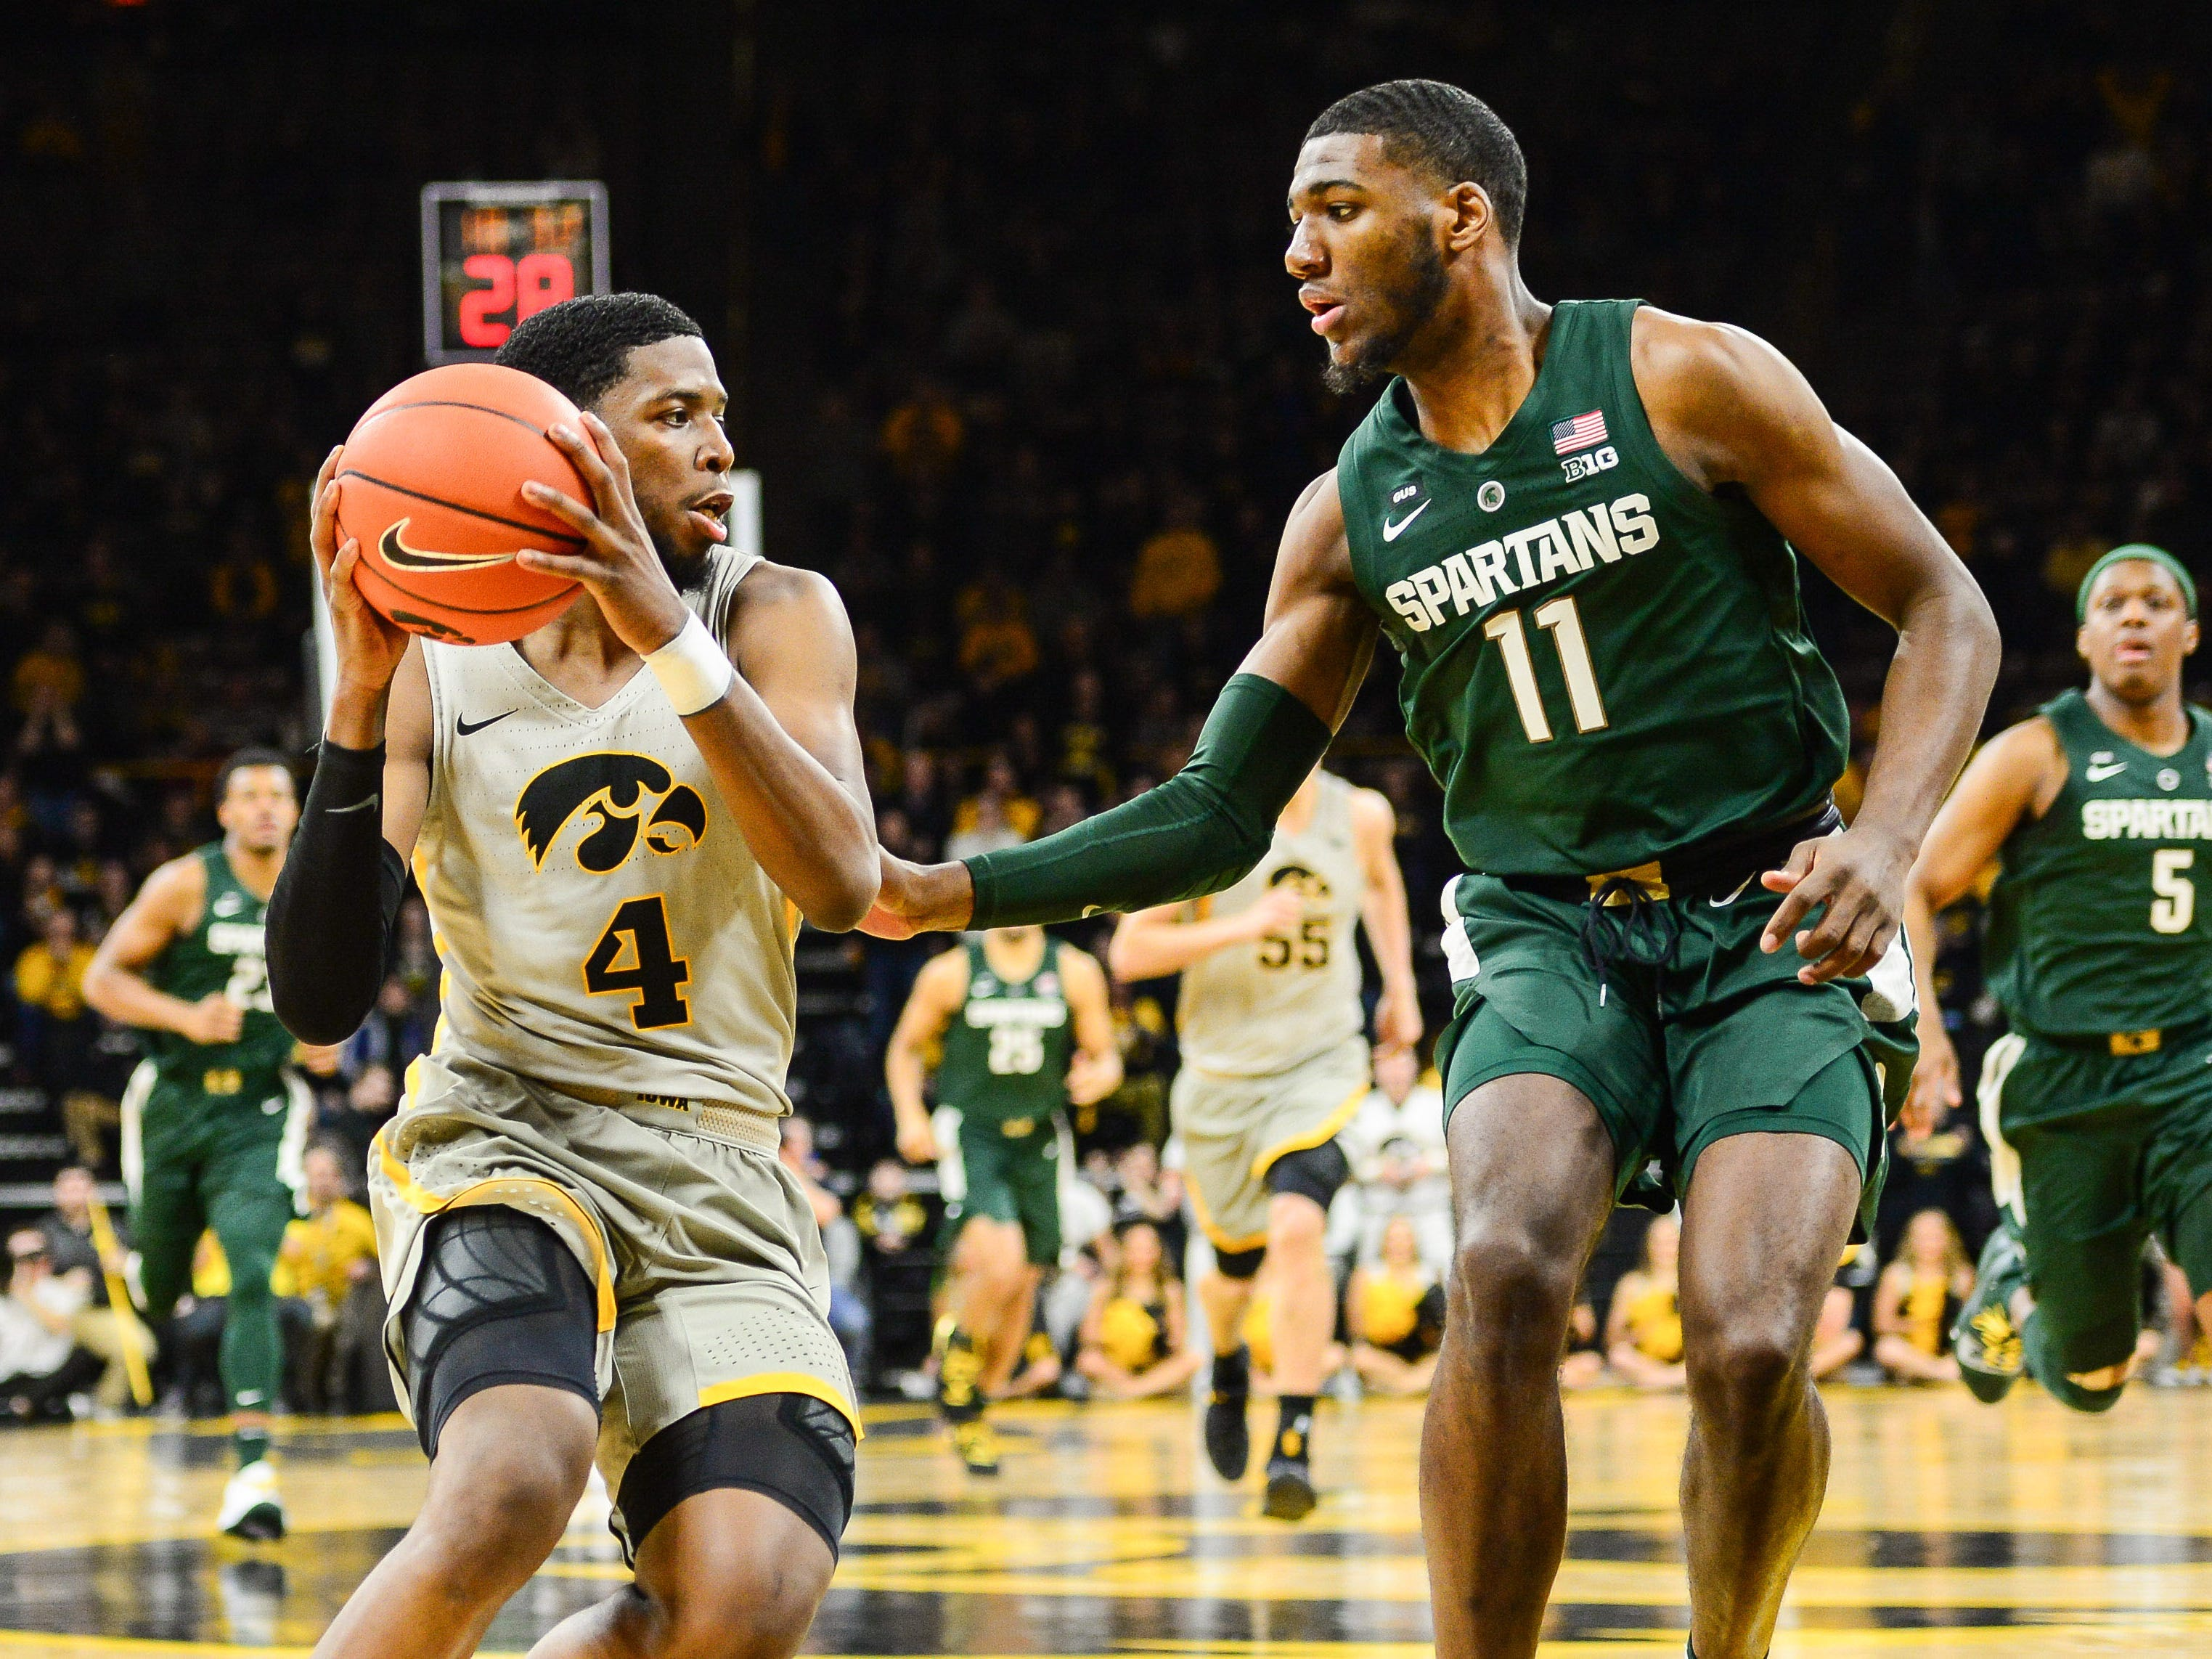 Iowa Hawkeyes guard Isaiah Moss (4) controls the ball as Michigan State Spartans forward Aaron Henry (11) defends during the first half at Carver-Hawkeye Arena.